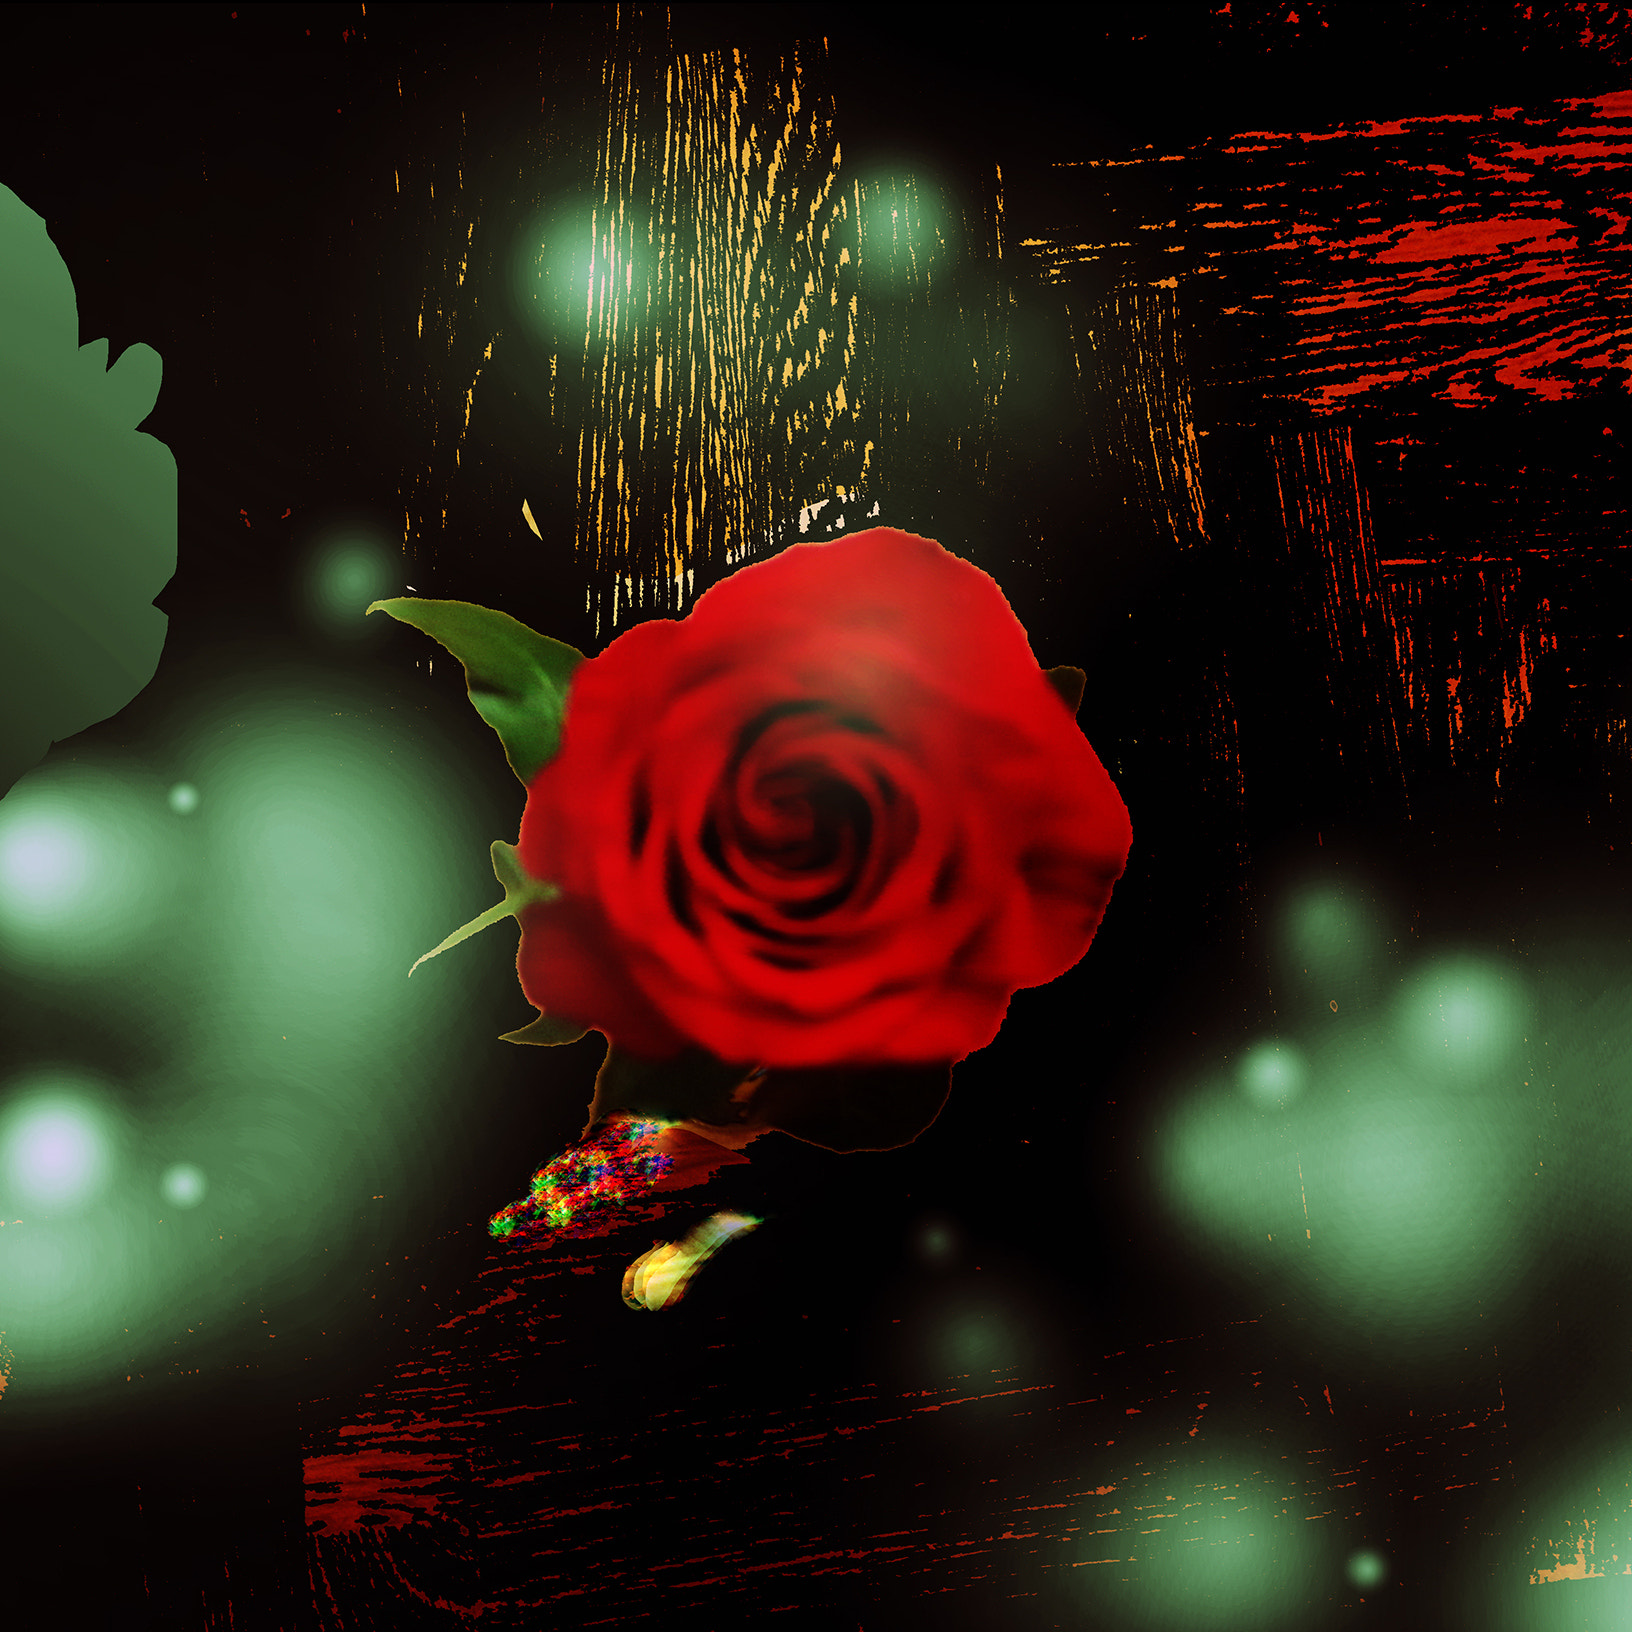 Photograph The rose and its ghosts  by Michaela Sibi on 500px